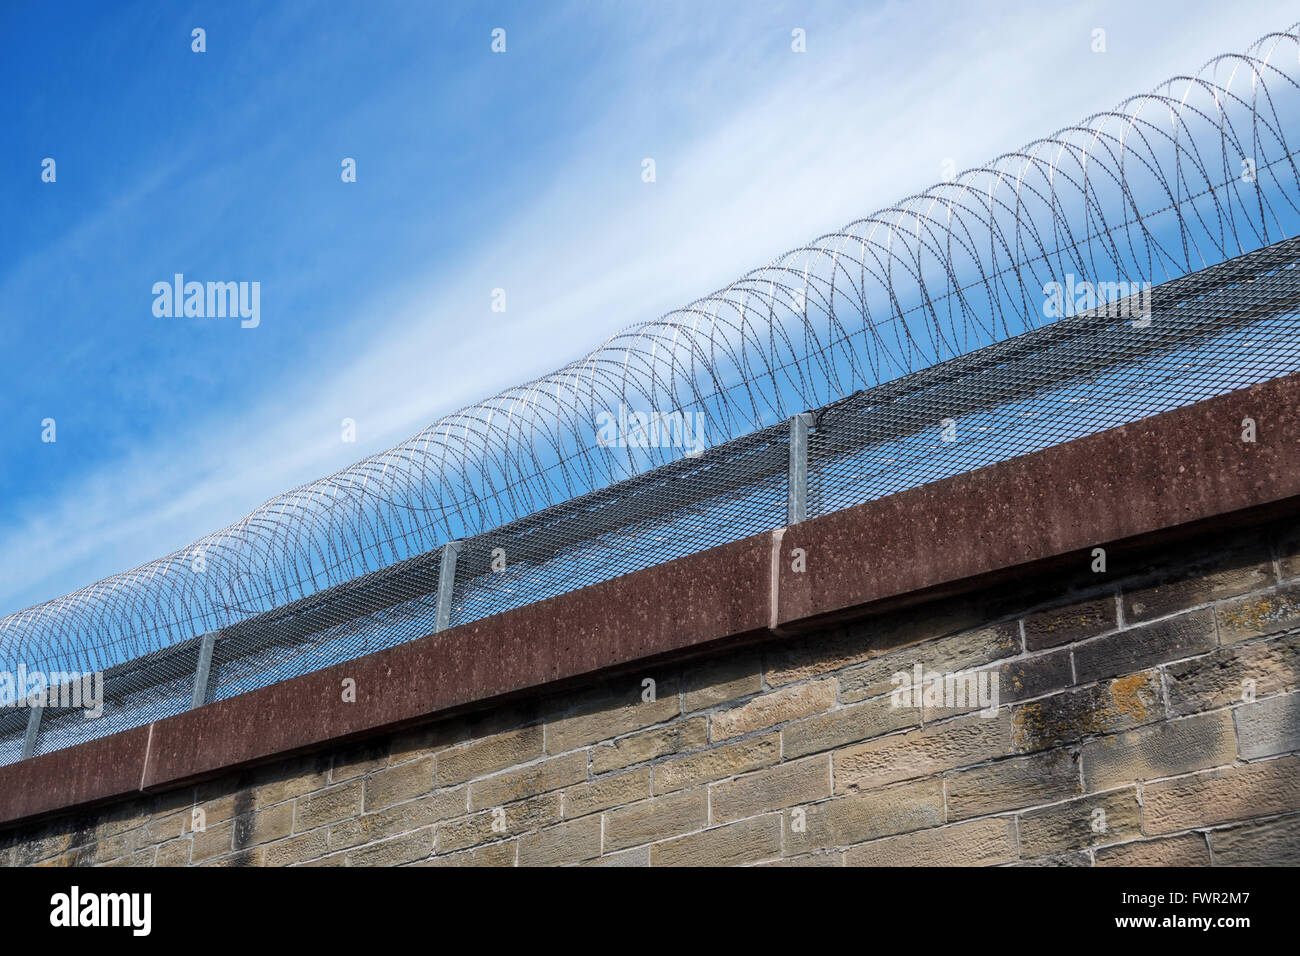 Barbed wire on a wall - Stock Image